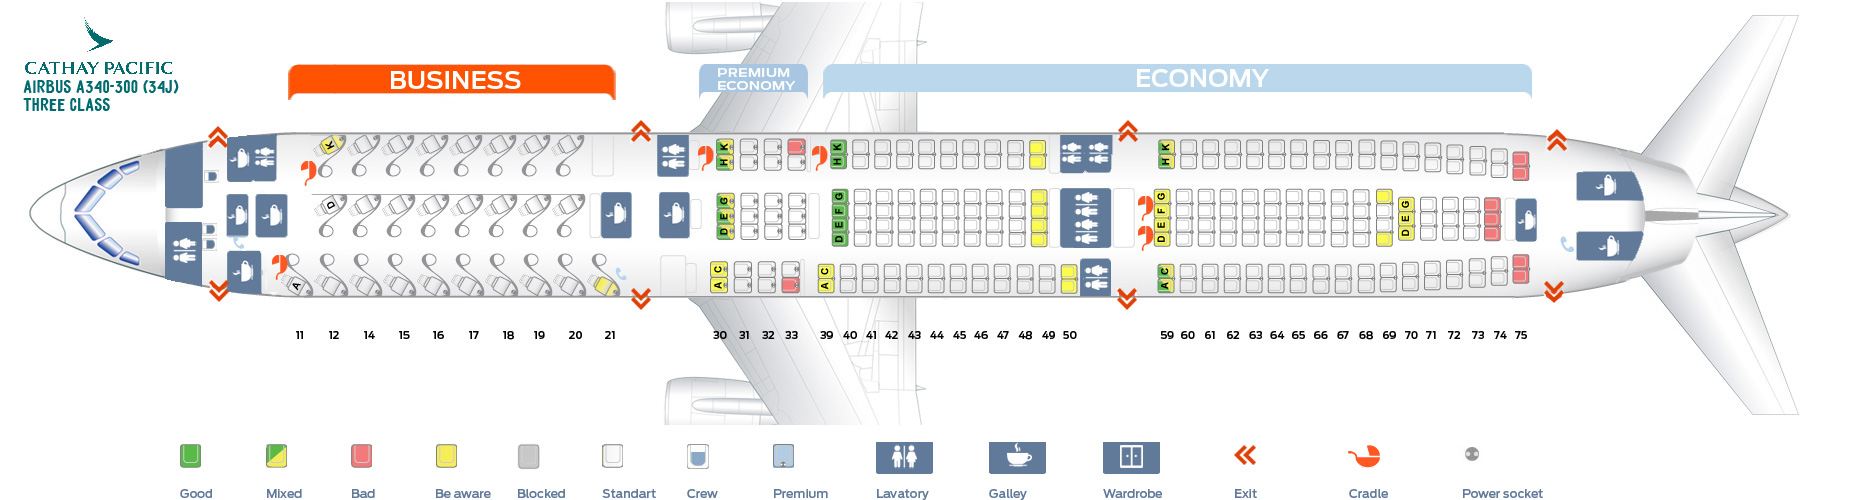 Cathay Pacific Seat Map Seat map Airbus A340 300 Cathay Pacific. Best seats in the plane Cathay Pacific Seat Map